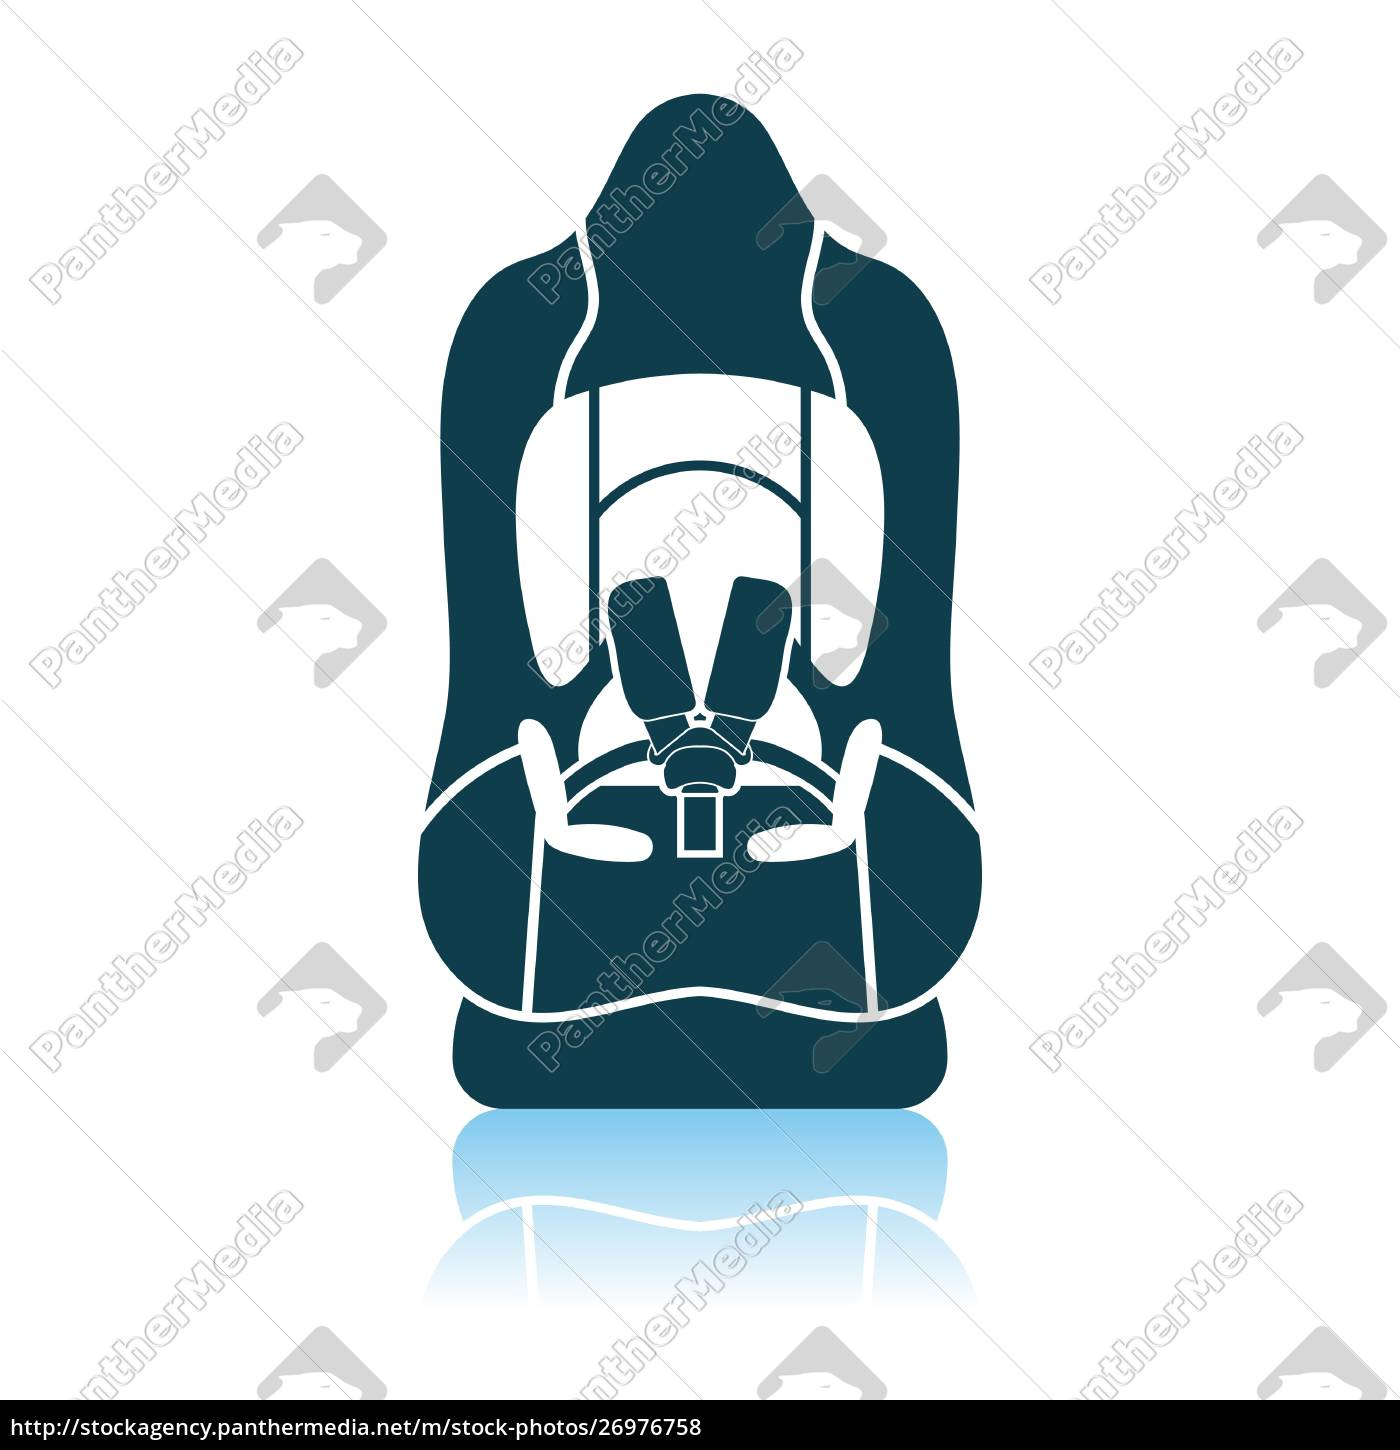 baby, car, seat, icon - 26976758